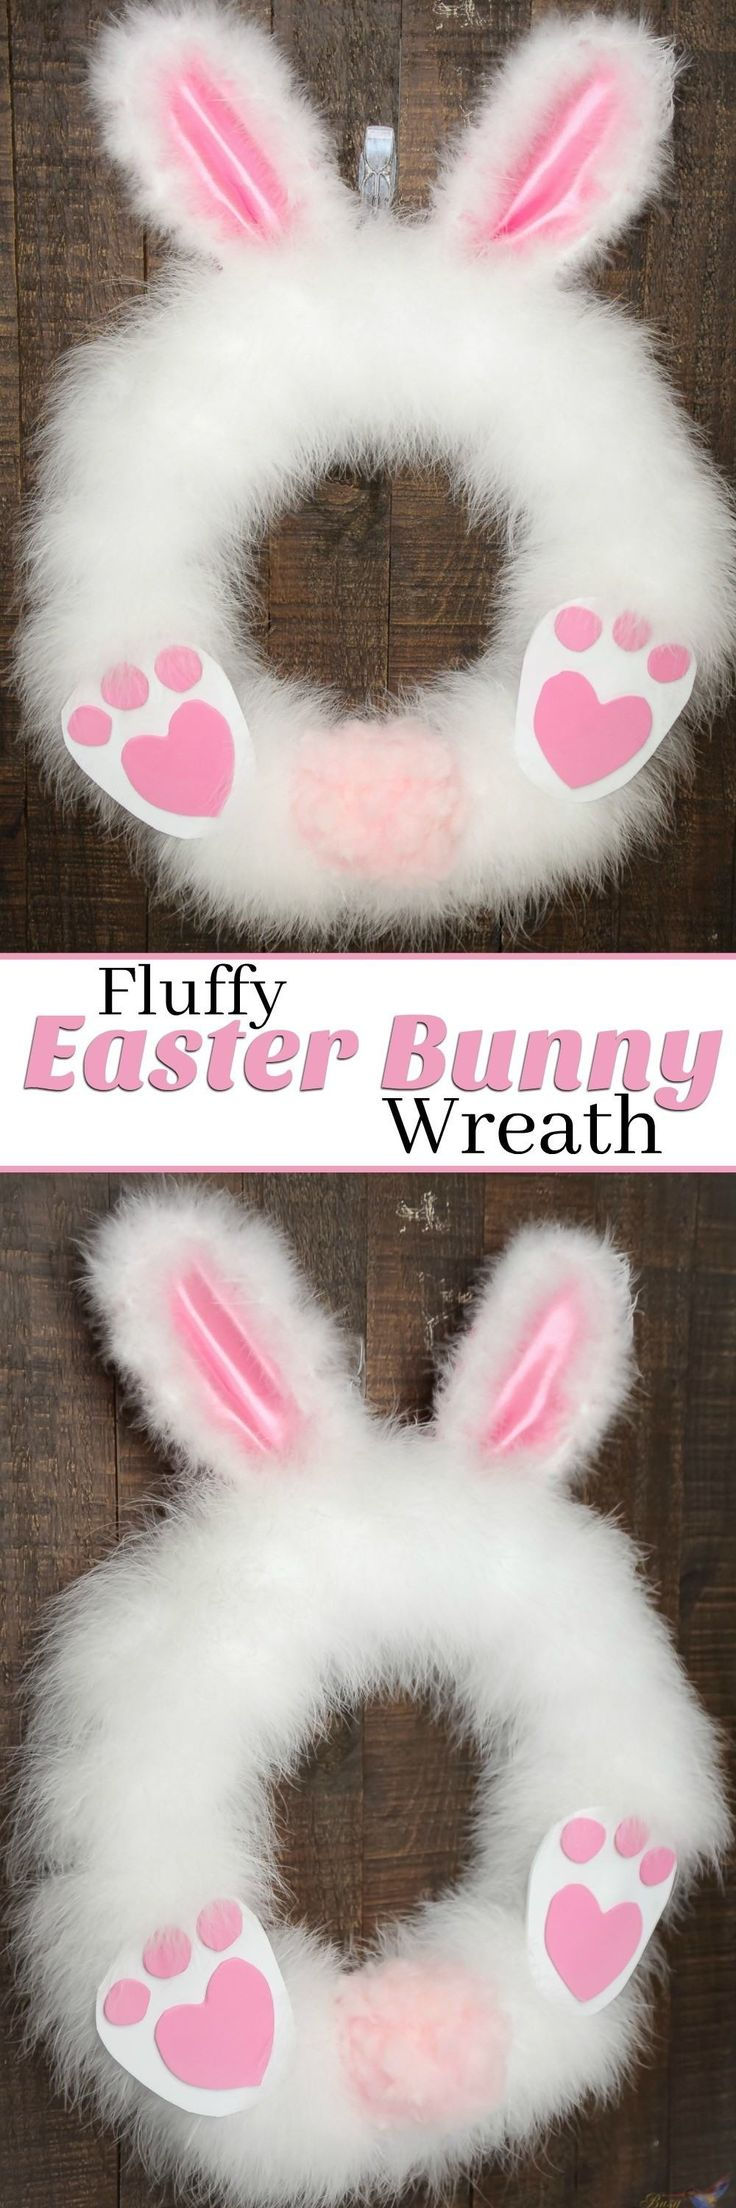 This DIY Fluffy Easter Bunny wreath craft project is so adorable and simple! Our tutorial is so easy that you can make this Easter Wreath in 30 minutes or less. And it's so fun that kids and adults alike can have fun while still looking amazing for your front porch! It's the perfect Easter Craft for a limited budget and time. Follow us for more Easter Decorating Ideas.  #homedecor #homedesign #homedecorideas #easterbunny #eastercrafts